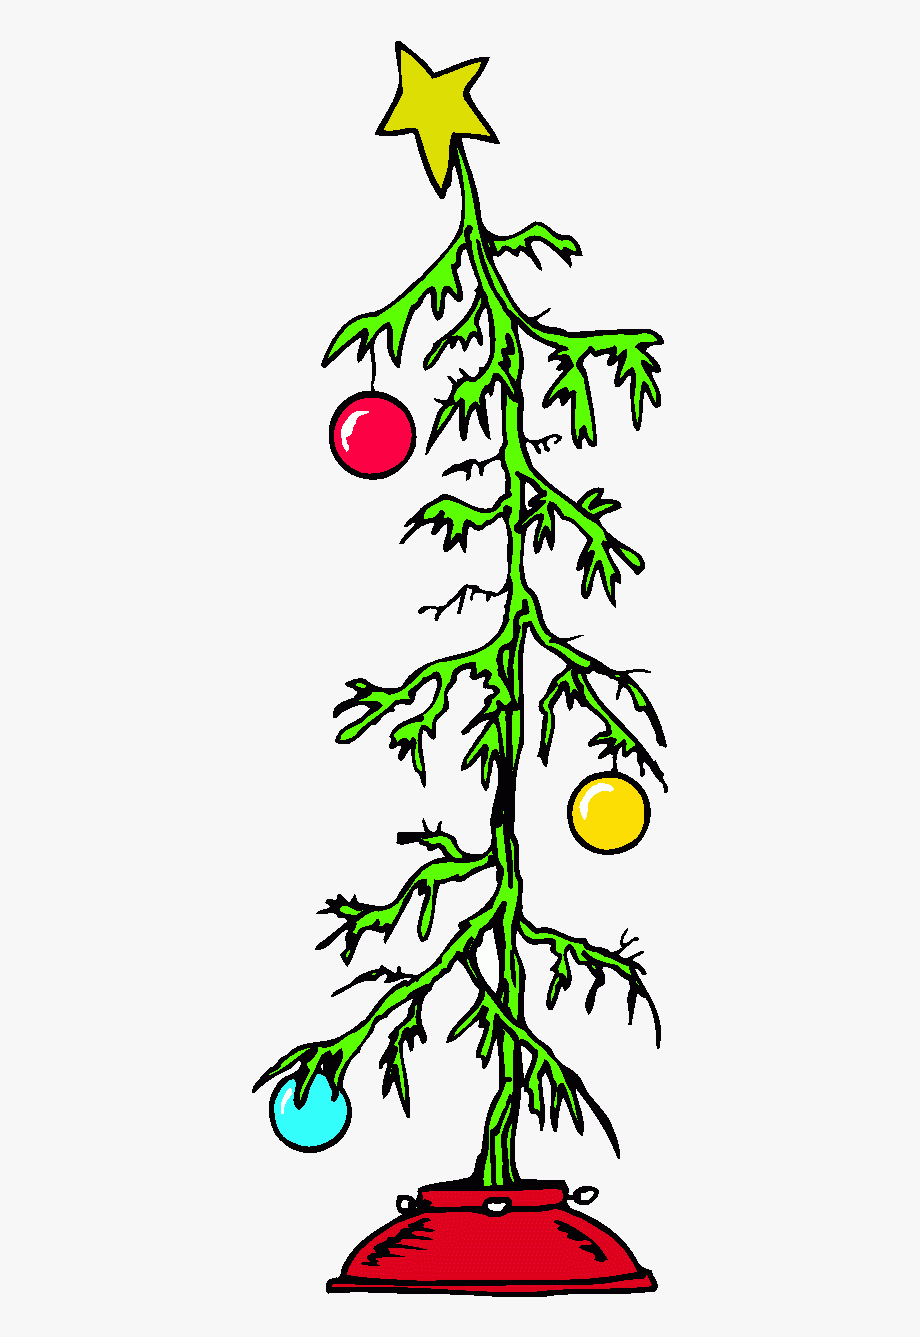 Grinch Tree Png Free Grinch Tree Png Transparent Images 72756 Pngio